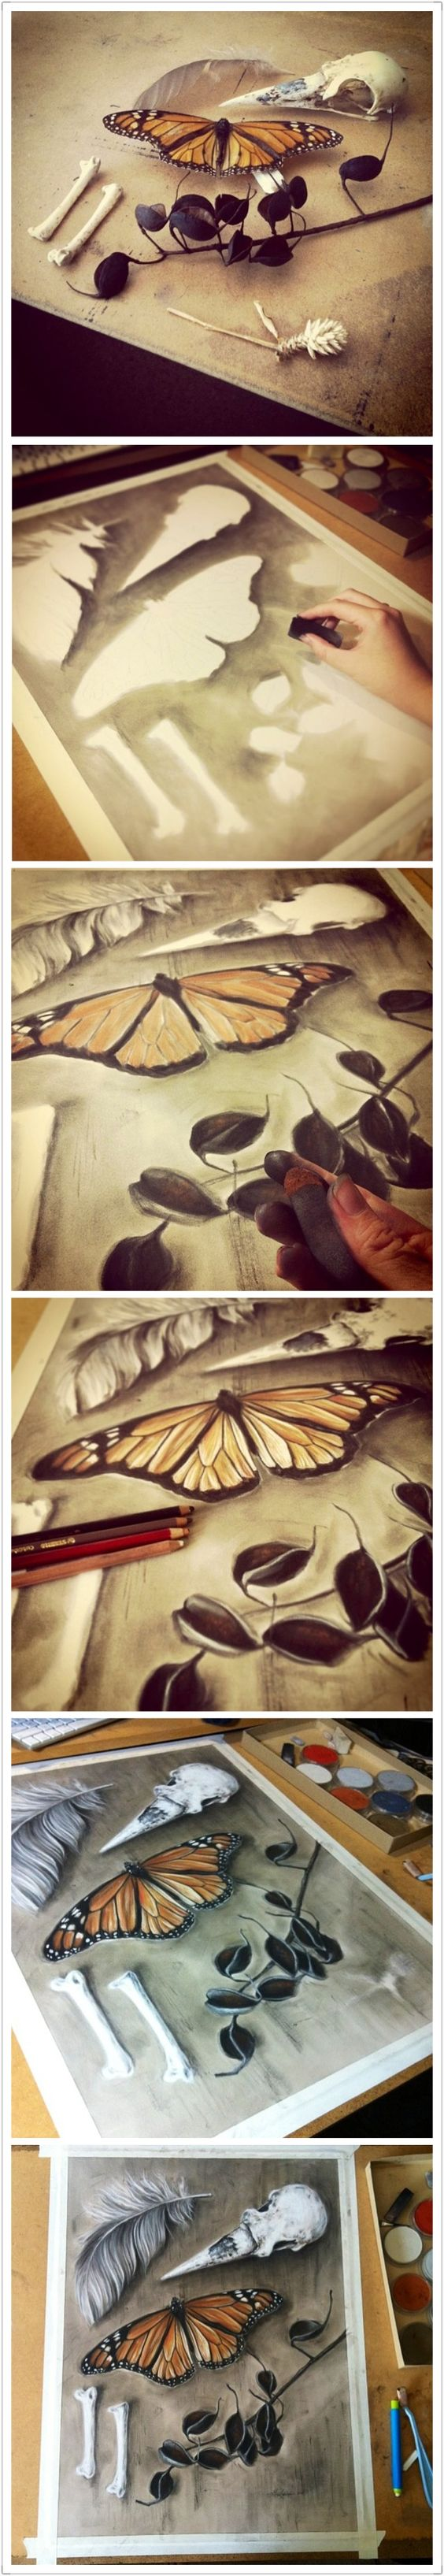 (Original as re-pinned)  How to pastel drawing -still life